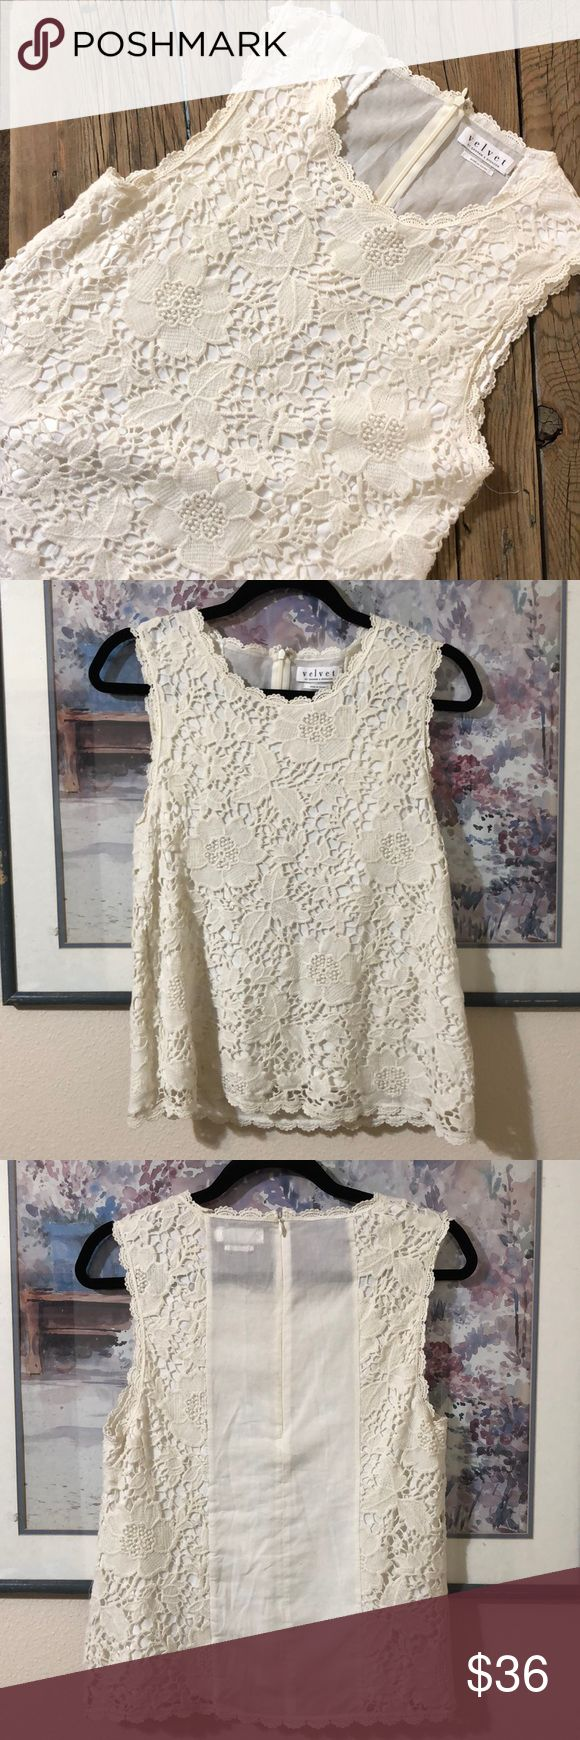 """Velvet by Graham & Spencer Lace Tank Cream colored lace tank from Velvet by Graham & Spencer. Size S. The lace wraps around the back and has a slightly sheer center back panel with a hidden zipper. Very good used condition. 100% cotton lining, 95% rayon, 5% spandex. Dry clean only. 16"""" pit to pit, 22"""" long. Velvet by Graham & Spencer Tops"""